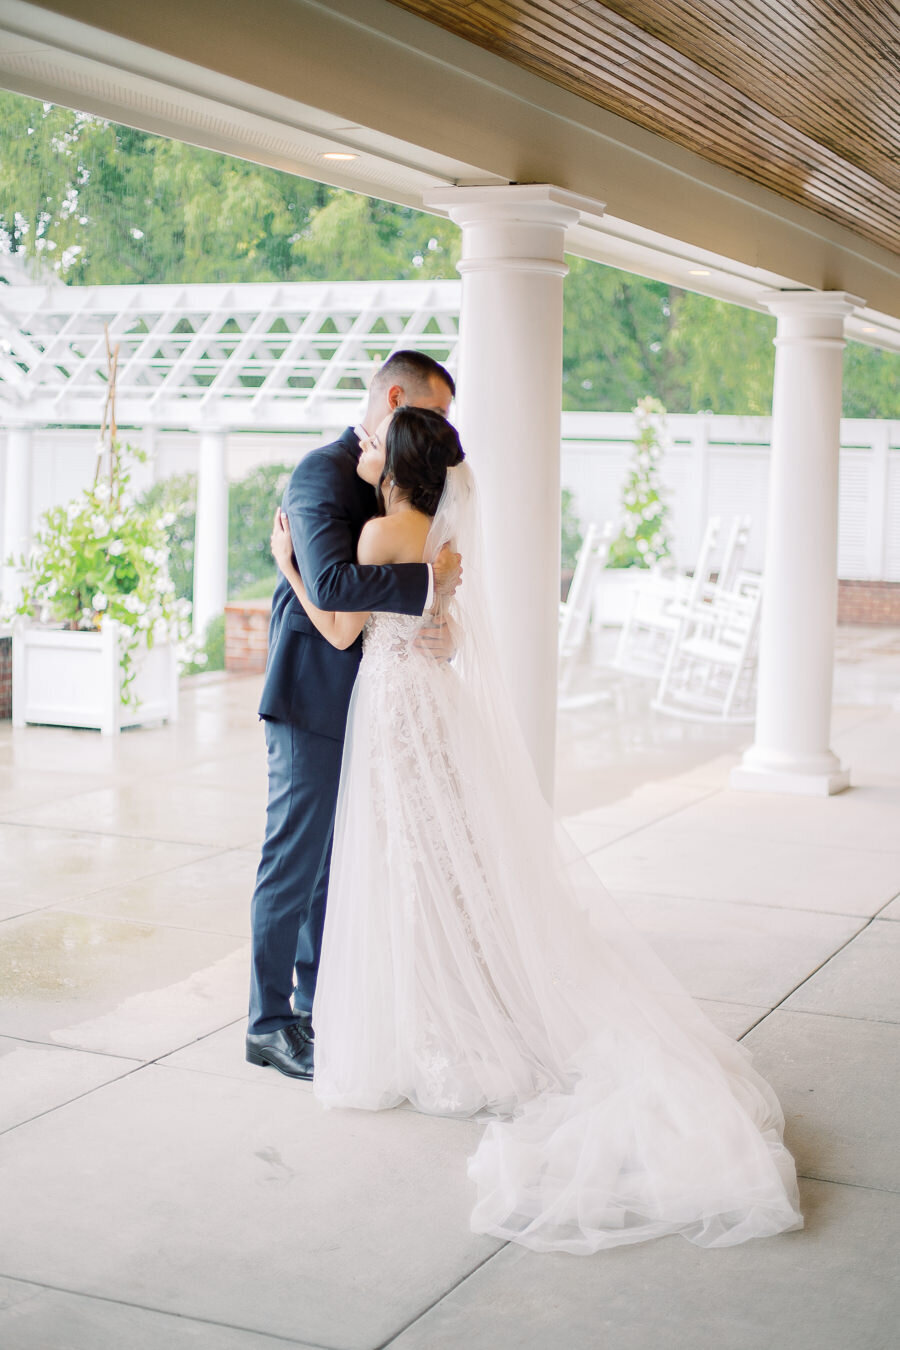 Chesapeake_Bay_Beach_Club_Stevensville_Maryland_Wedding_Megan_Harris_Photography_Blog-32